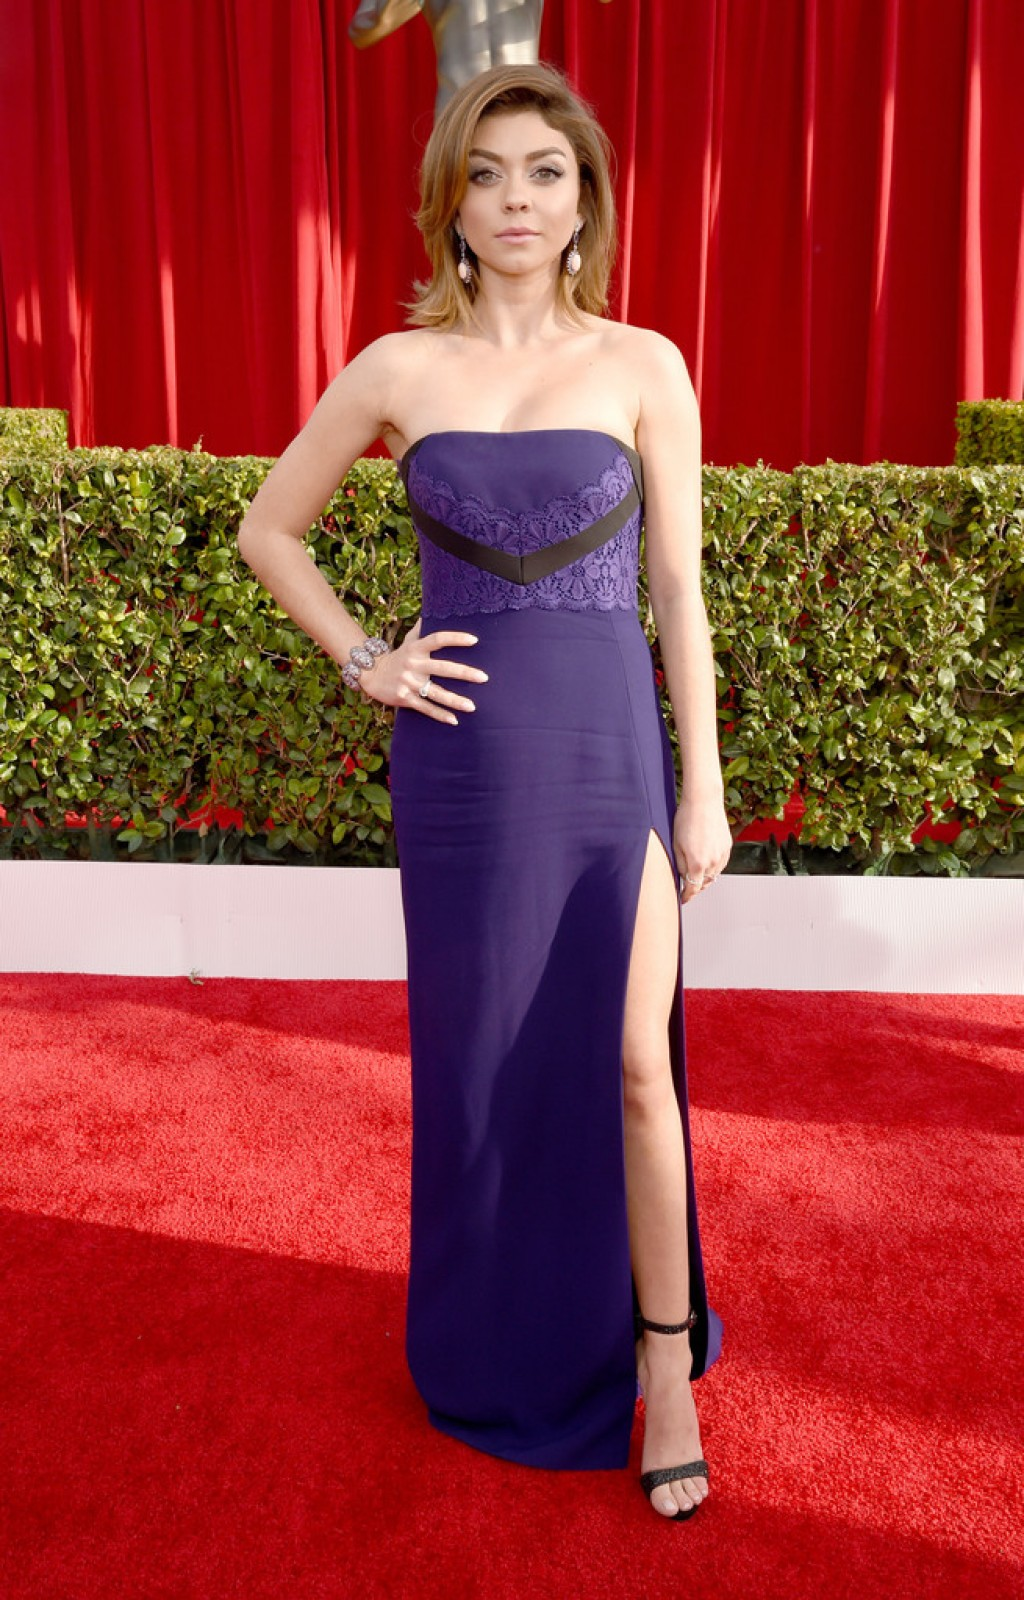 Screen-Actors-Guild-Awards-Sarah-Hyland-shoes-Dress-1024x1600